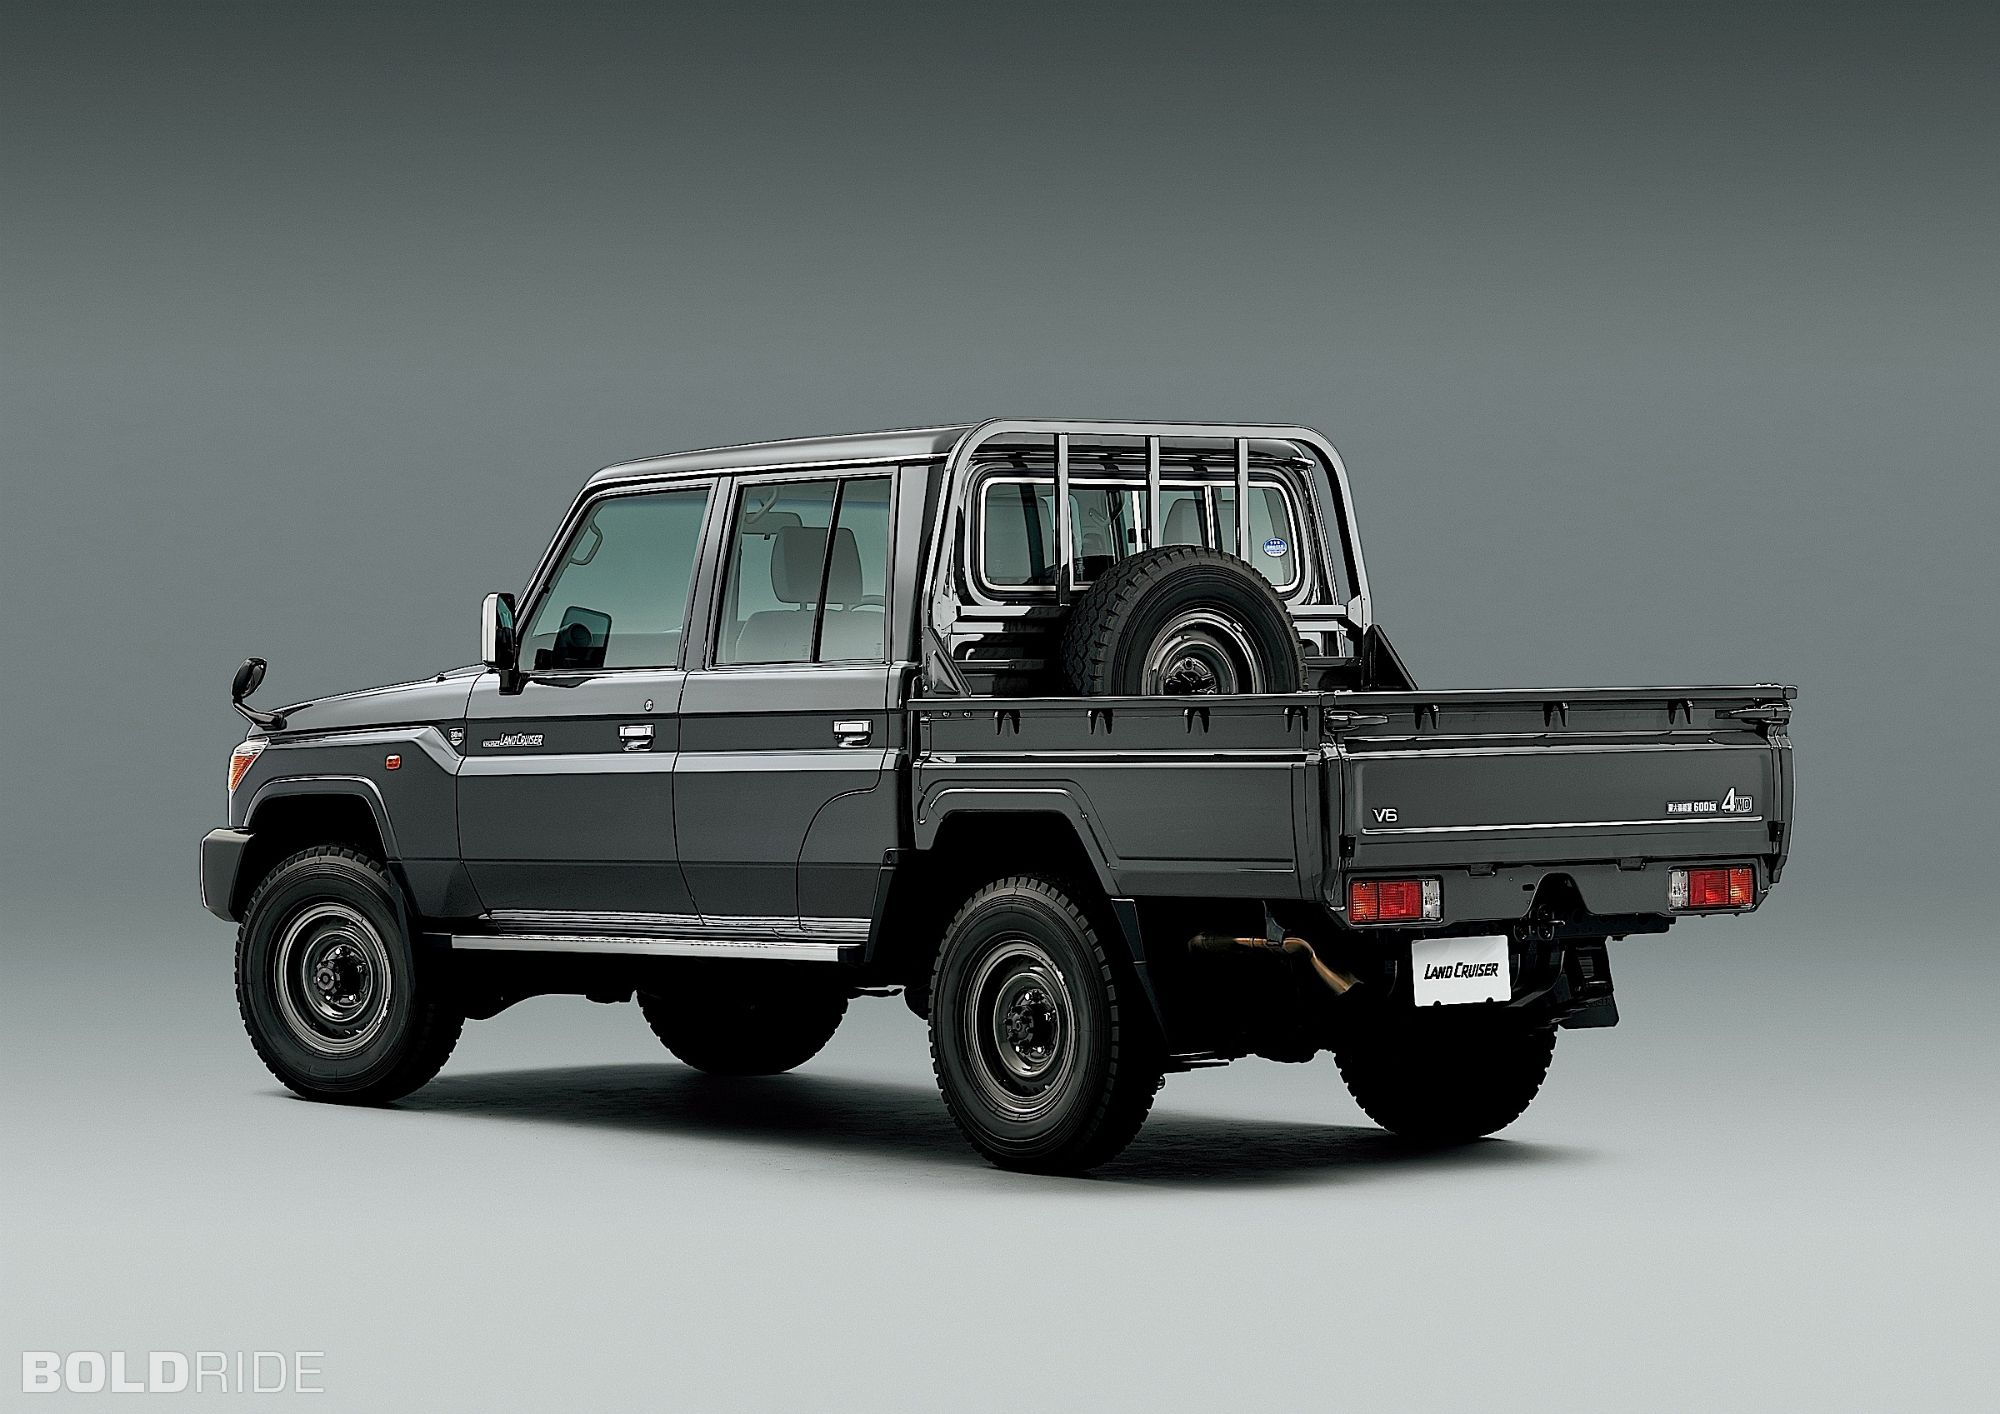 2015 toyota land cruiser 70 series limited edition images